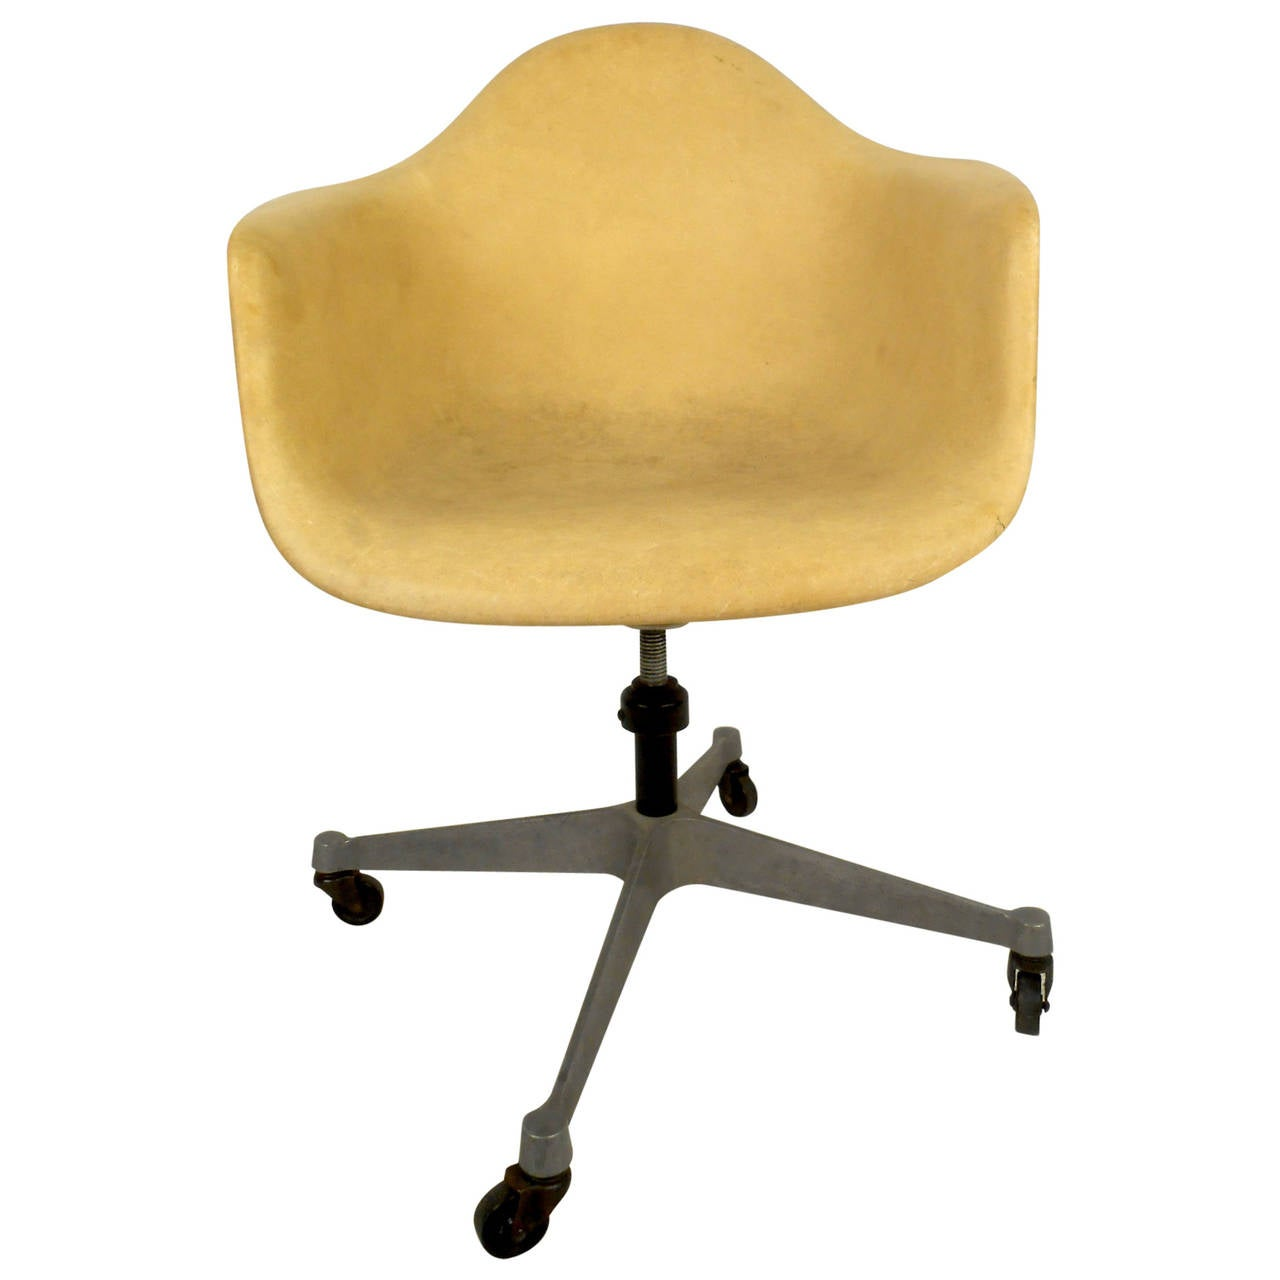 Herman miller chair - Mid Century Modern Fiberglass Shell Chair With Wheels By Herman Miller 1